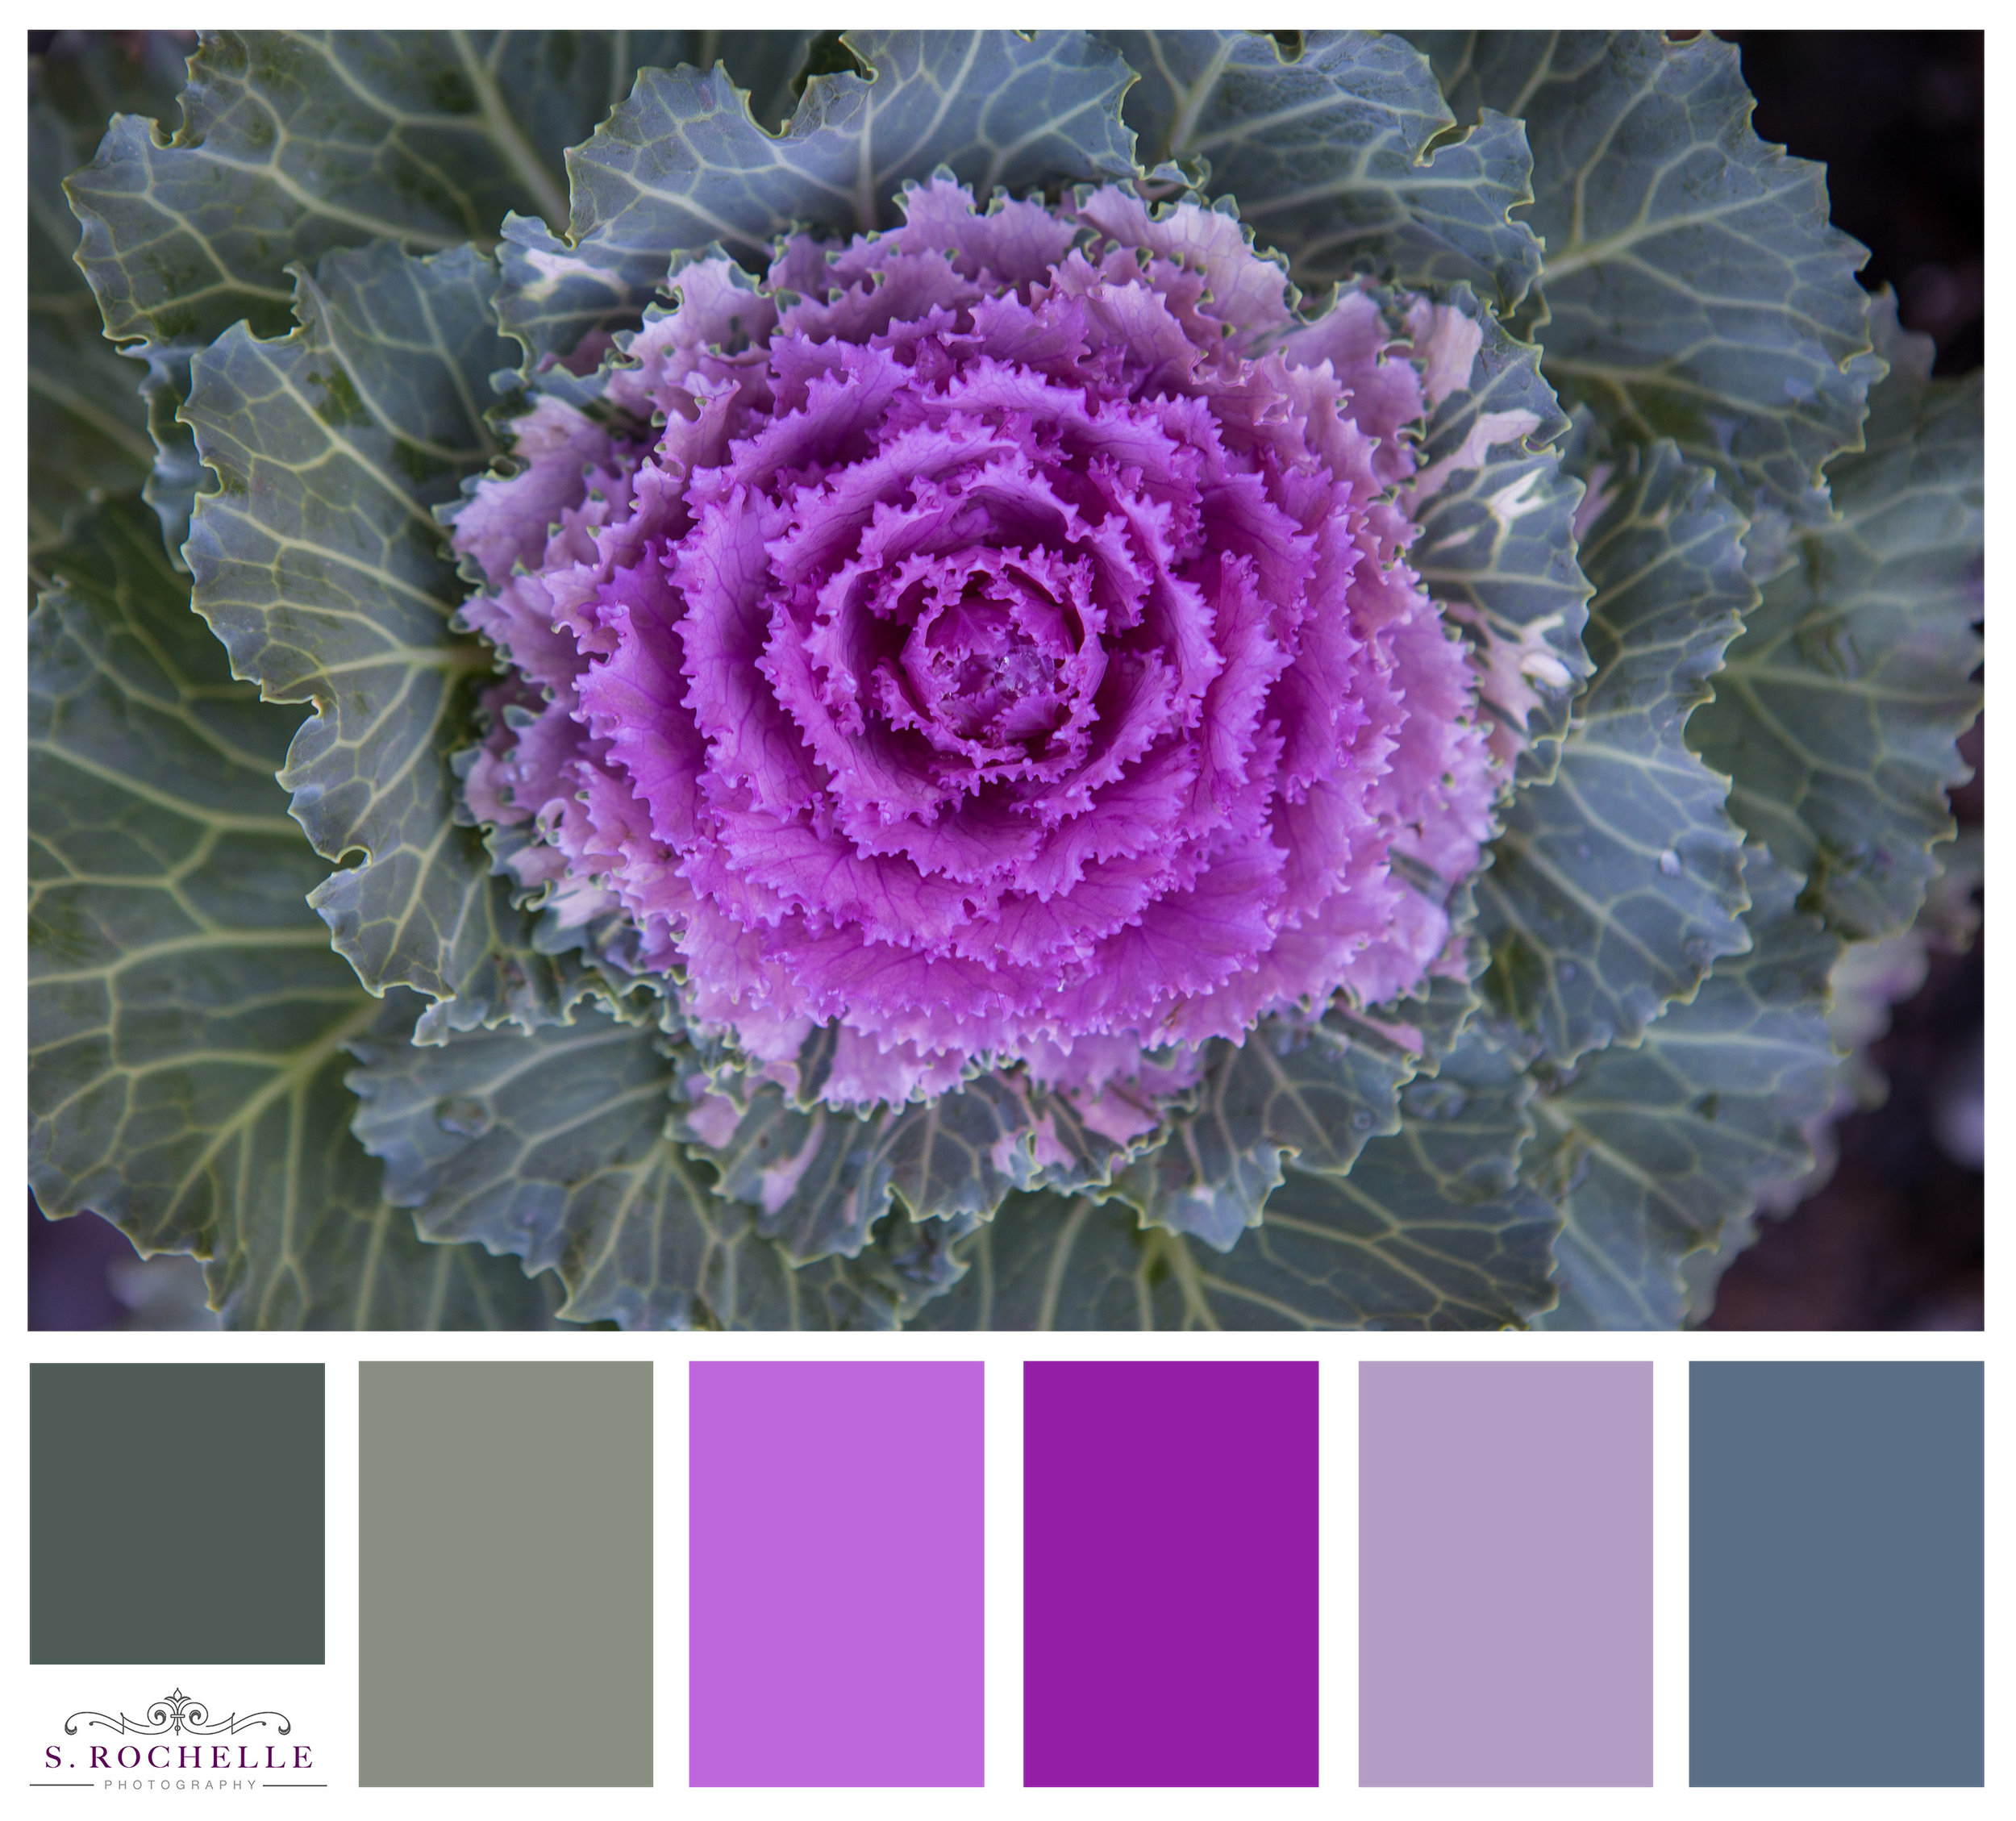 Ornamental_Cabbage_S_Rochelle_Photography_20171205_IMG_2282_ColorPalette.jpg